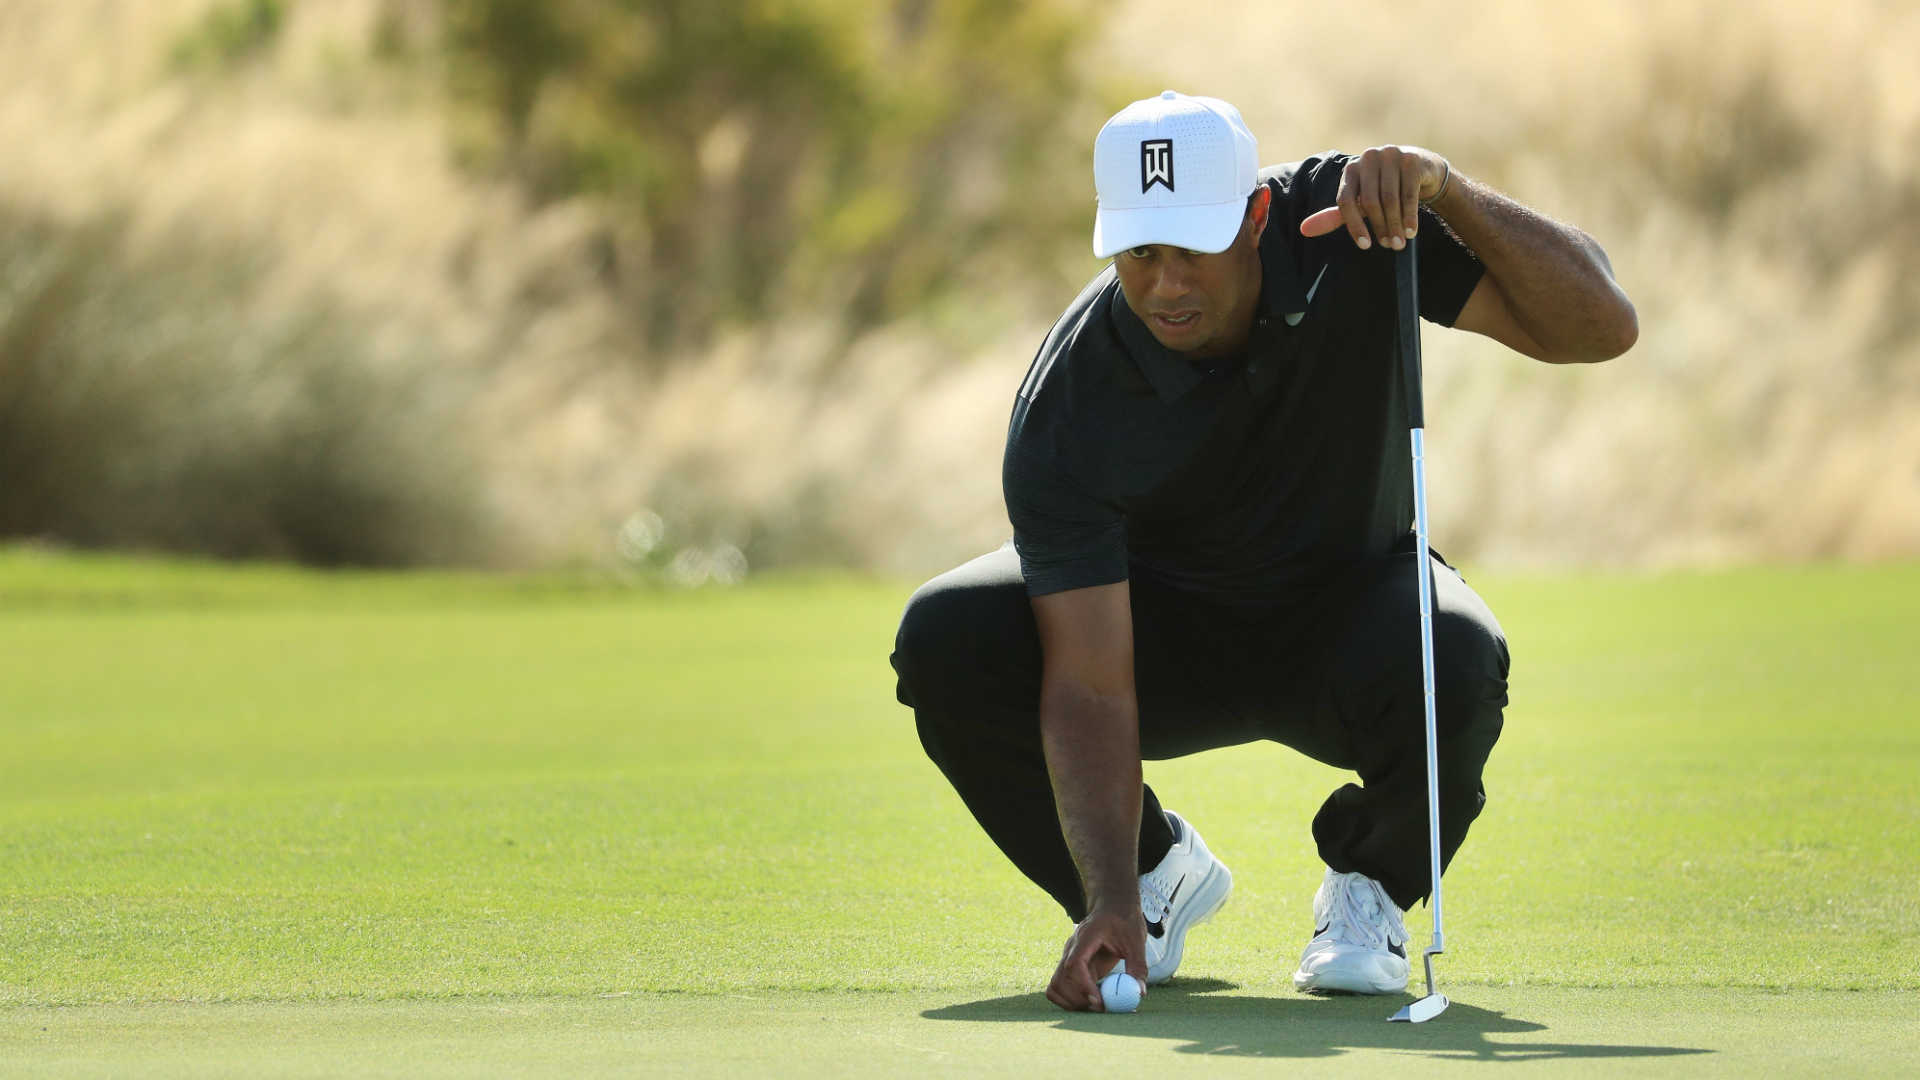 Emotional Tiger Woods shows flashes of his vintage game